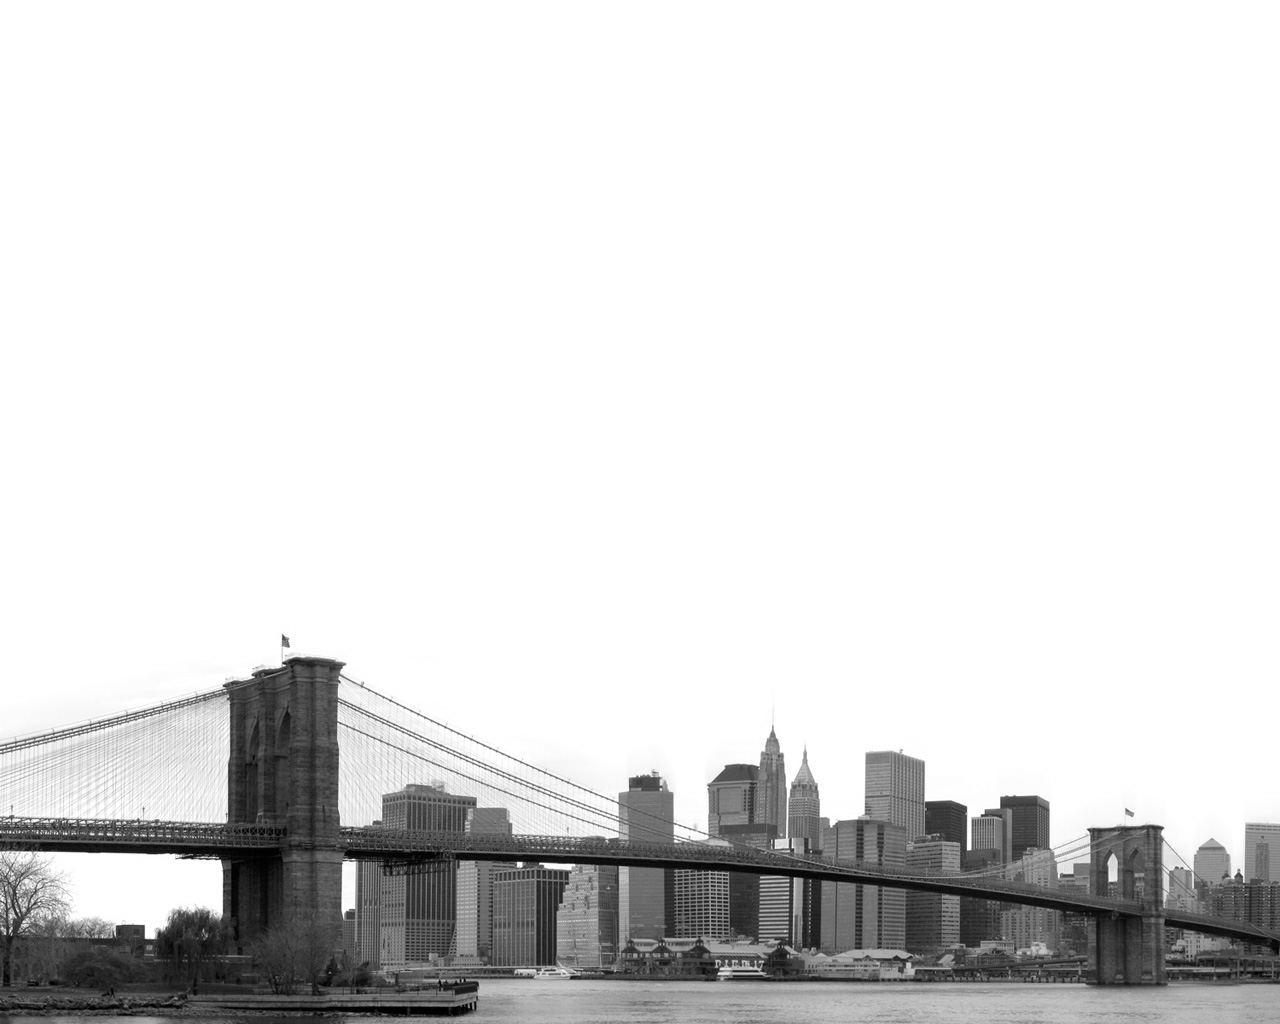 1280x1024 Brooklyn Bridge